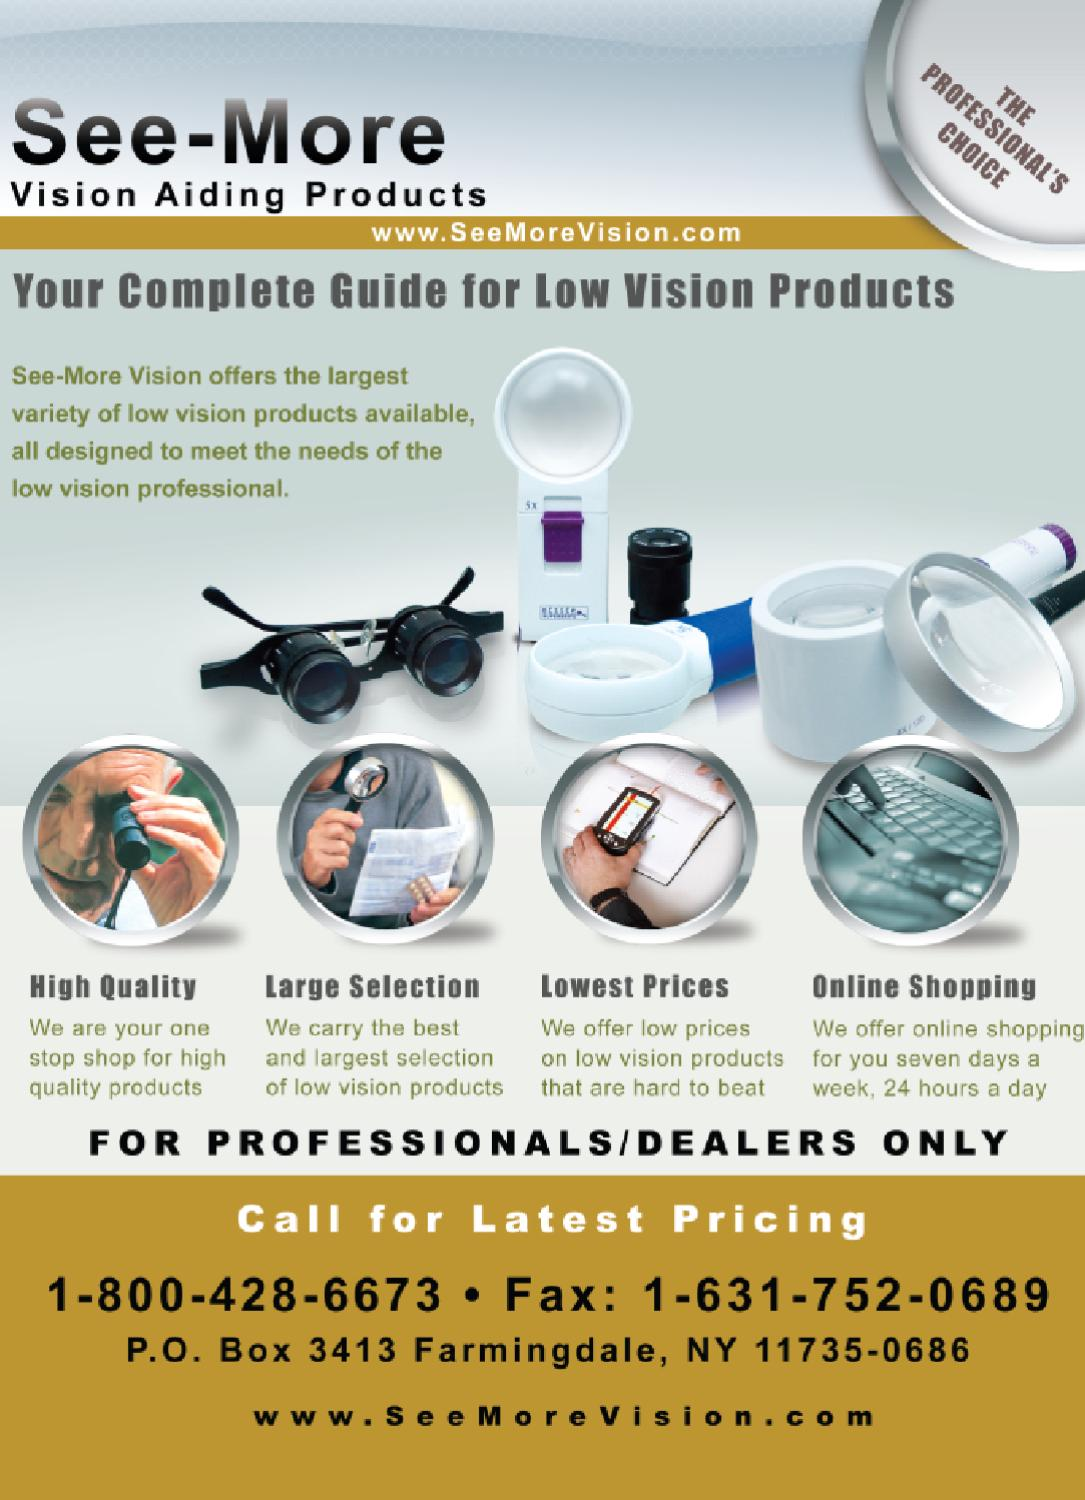 Books Maps Pages Low Vision 2X Large Rectangular Lens Handheld Magnifier Reading Magnifying Glass with LED Lights- 2.3 X 4 Rimless Distortion-Free Viewing Area Ideal for Seniors Magazines